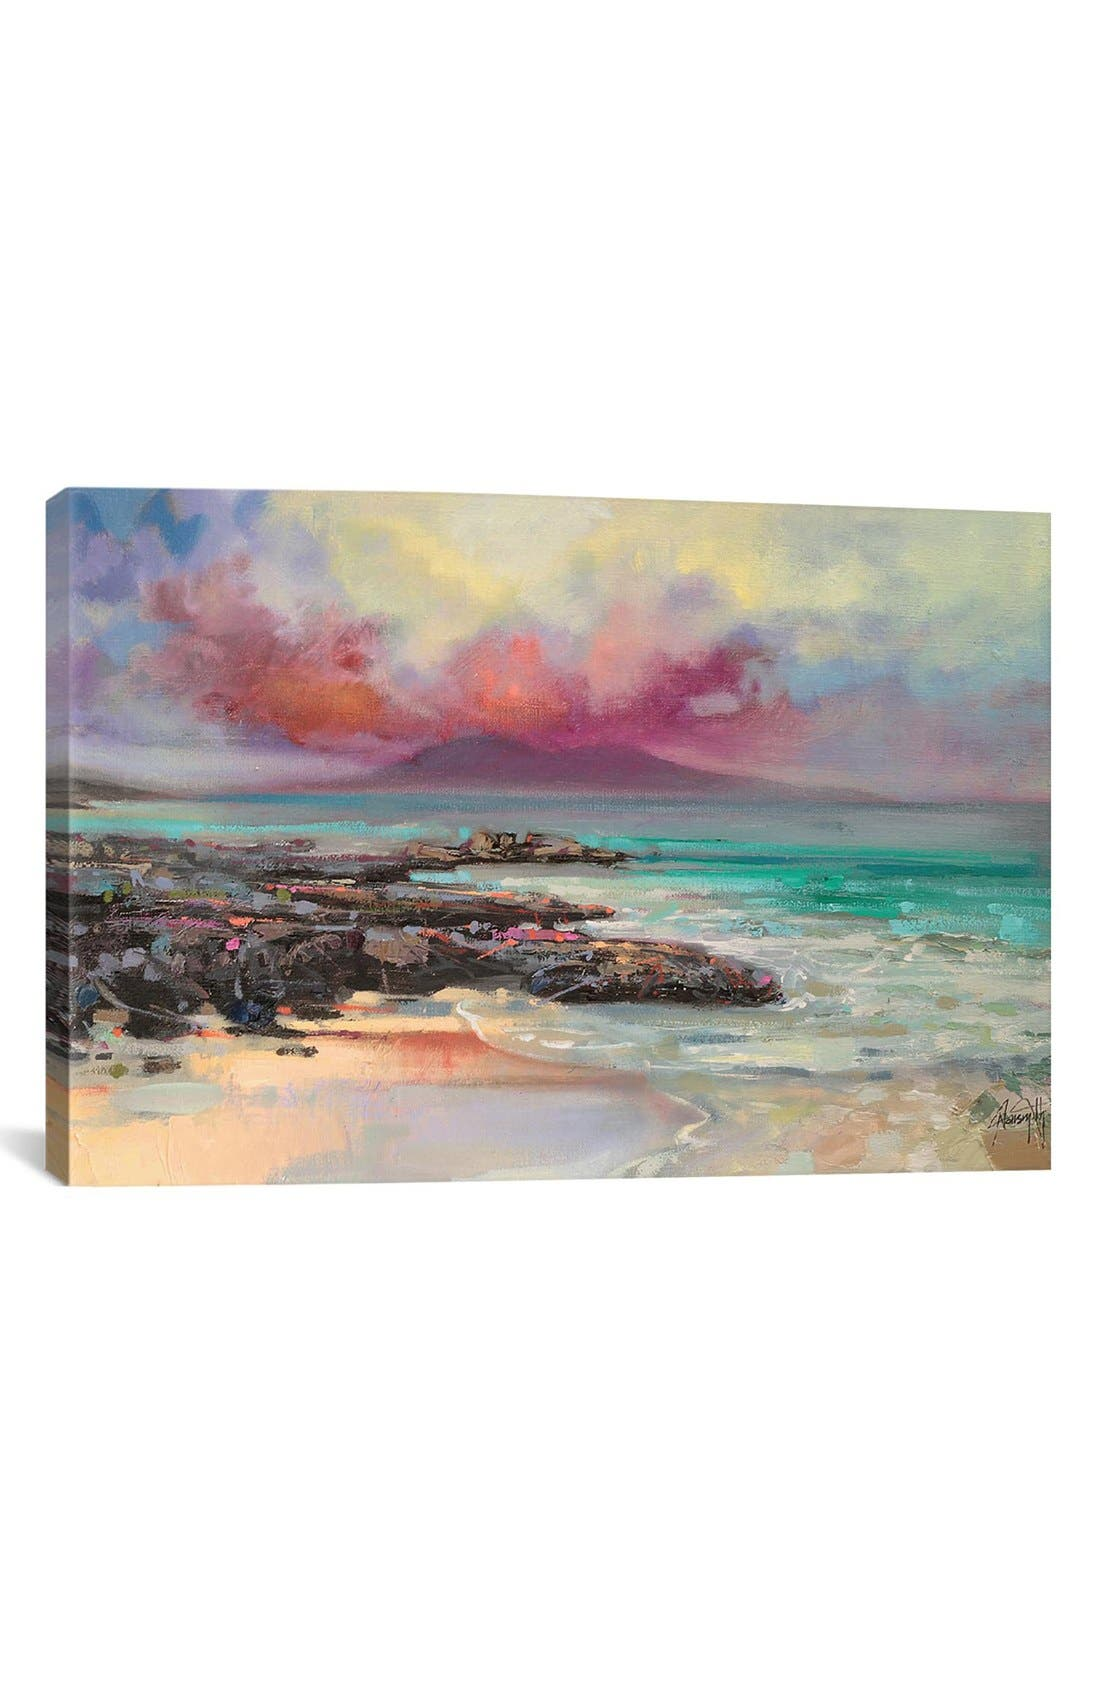 'Harris Rocks' Giclée Print Canvas Art,                         Main,                         color, Pink